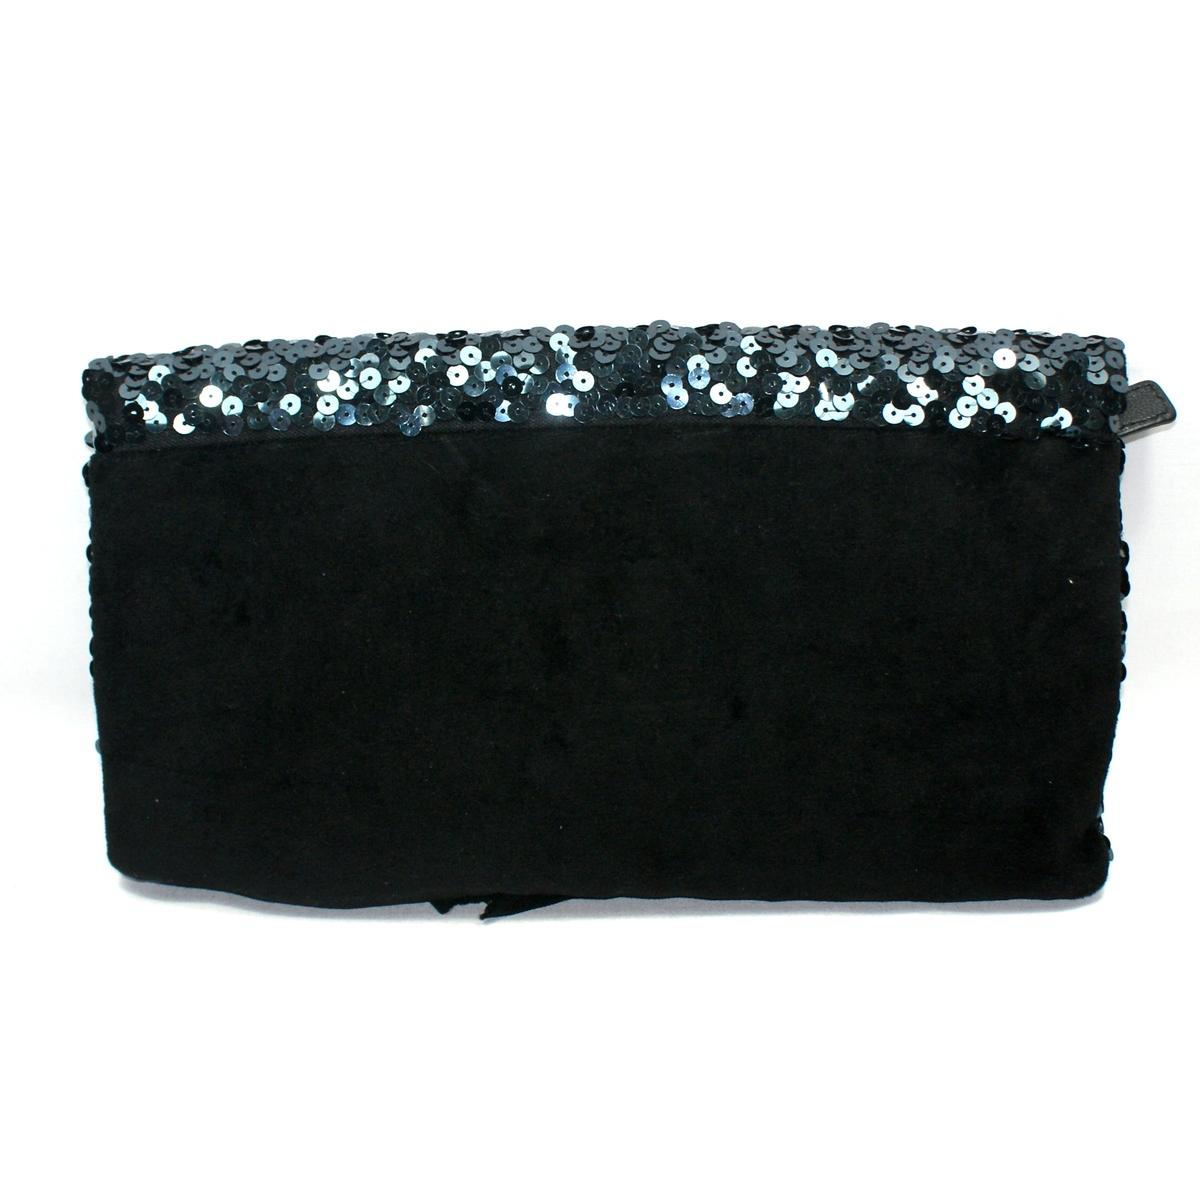 Black Clutch Purses. Clothing. Bags & Accessories. Black Clutch Purses. Showing 48 of results that match your query. Search Product Result. Product - Fashion Sparkly Sequin Handbag Lady Party Evening Clutch Shoulder Bag for Women (Black) Product Image. Price $ Product Title.